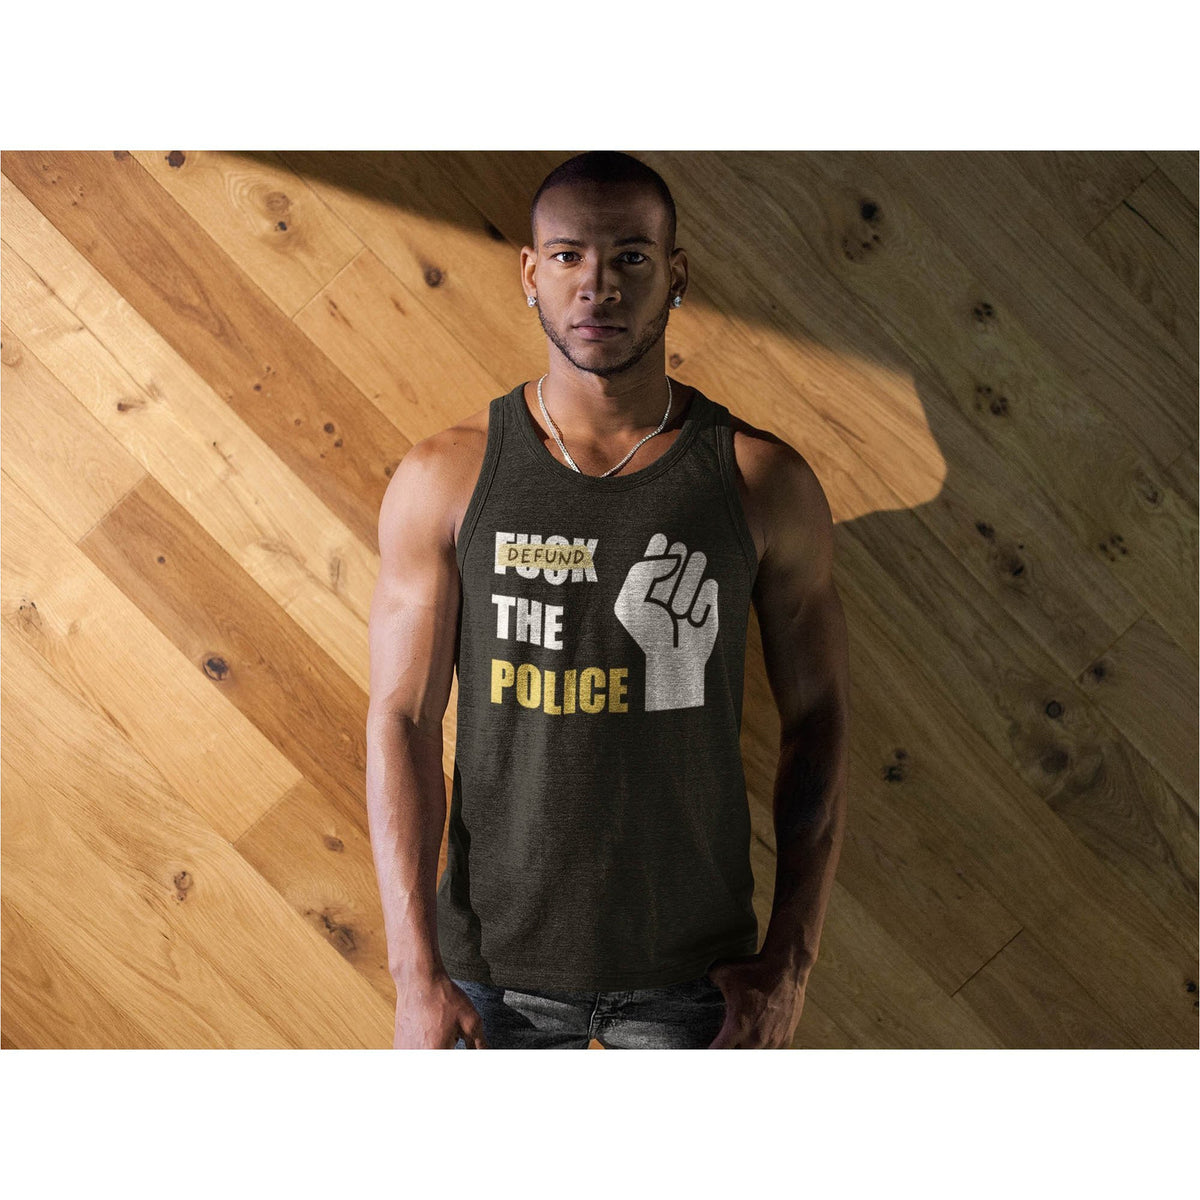 Defund the Police Men's Premium Tank